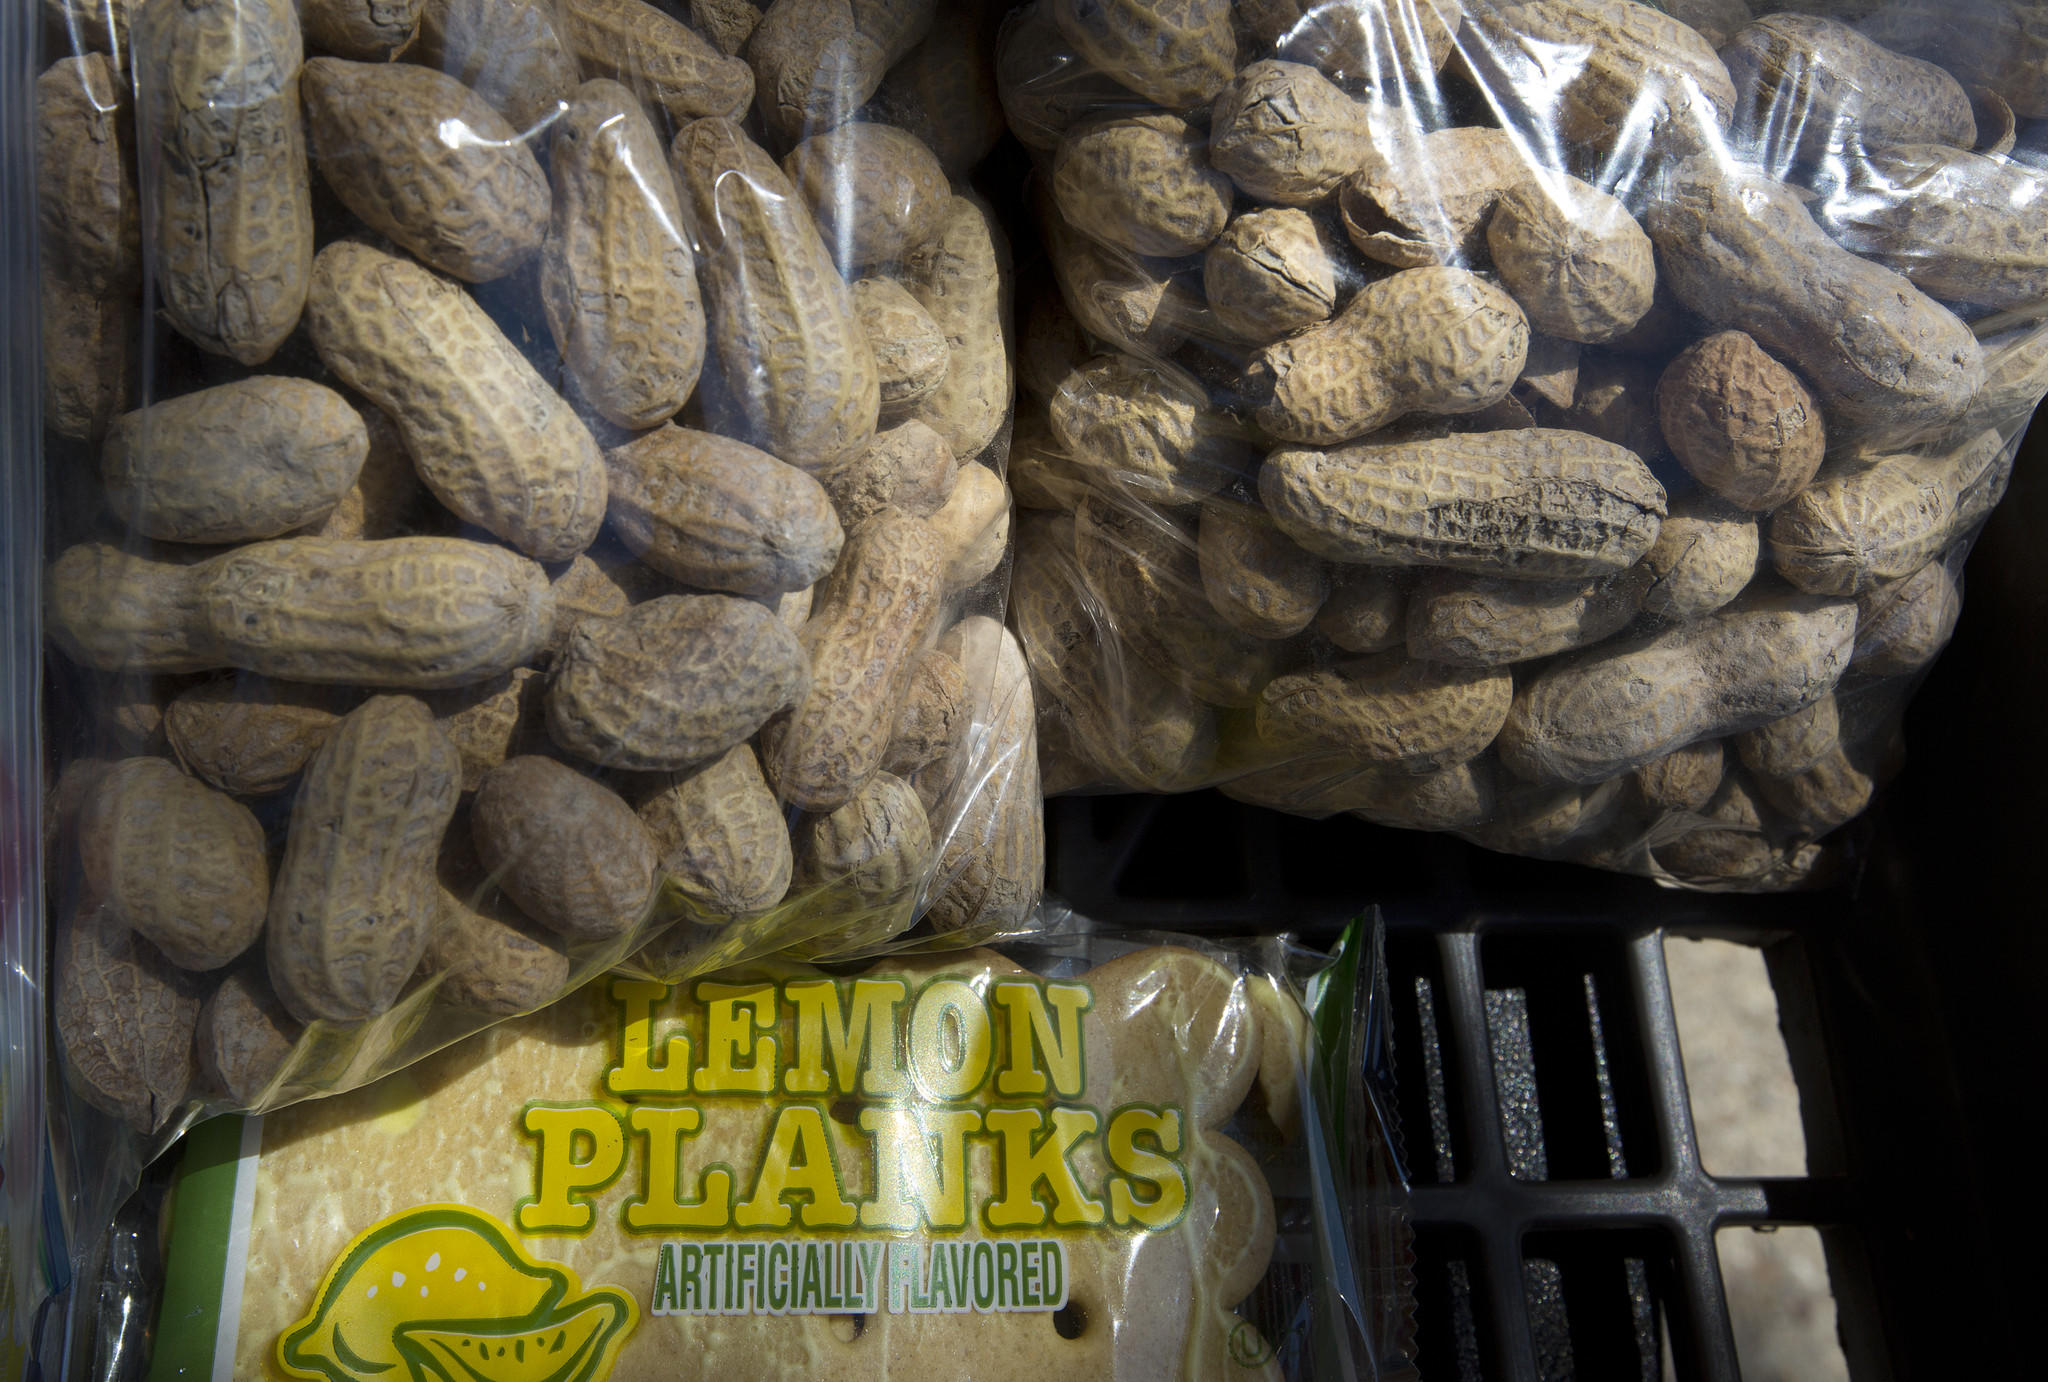 Peanuts and pastries sit on display at Leland Thompson's food stand near 41st Street and Washington Avenue in Newport News.